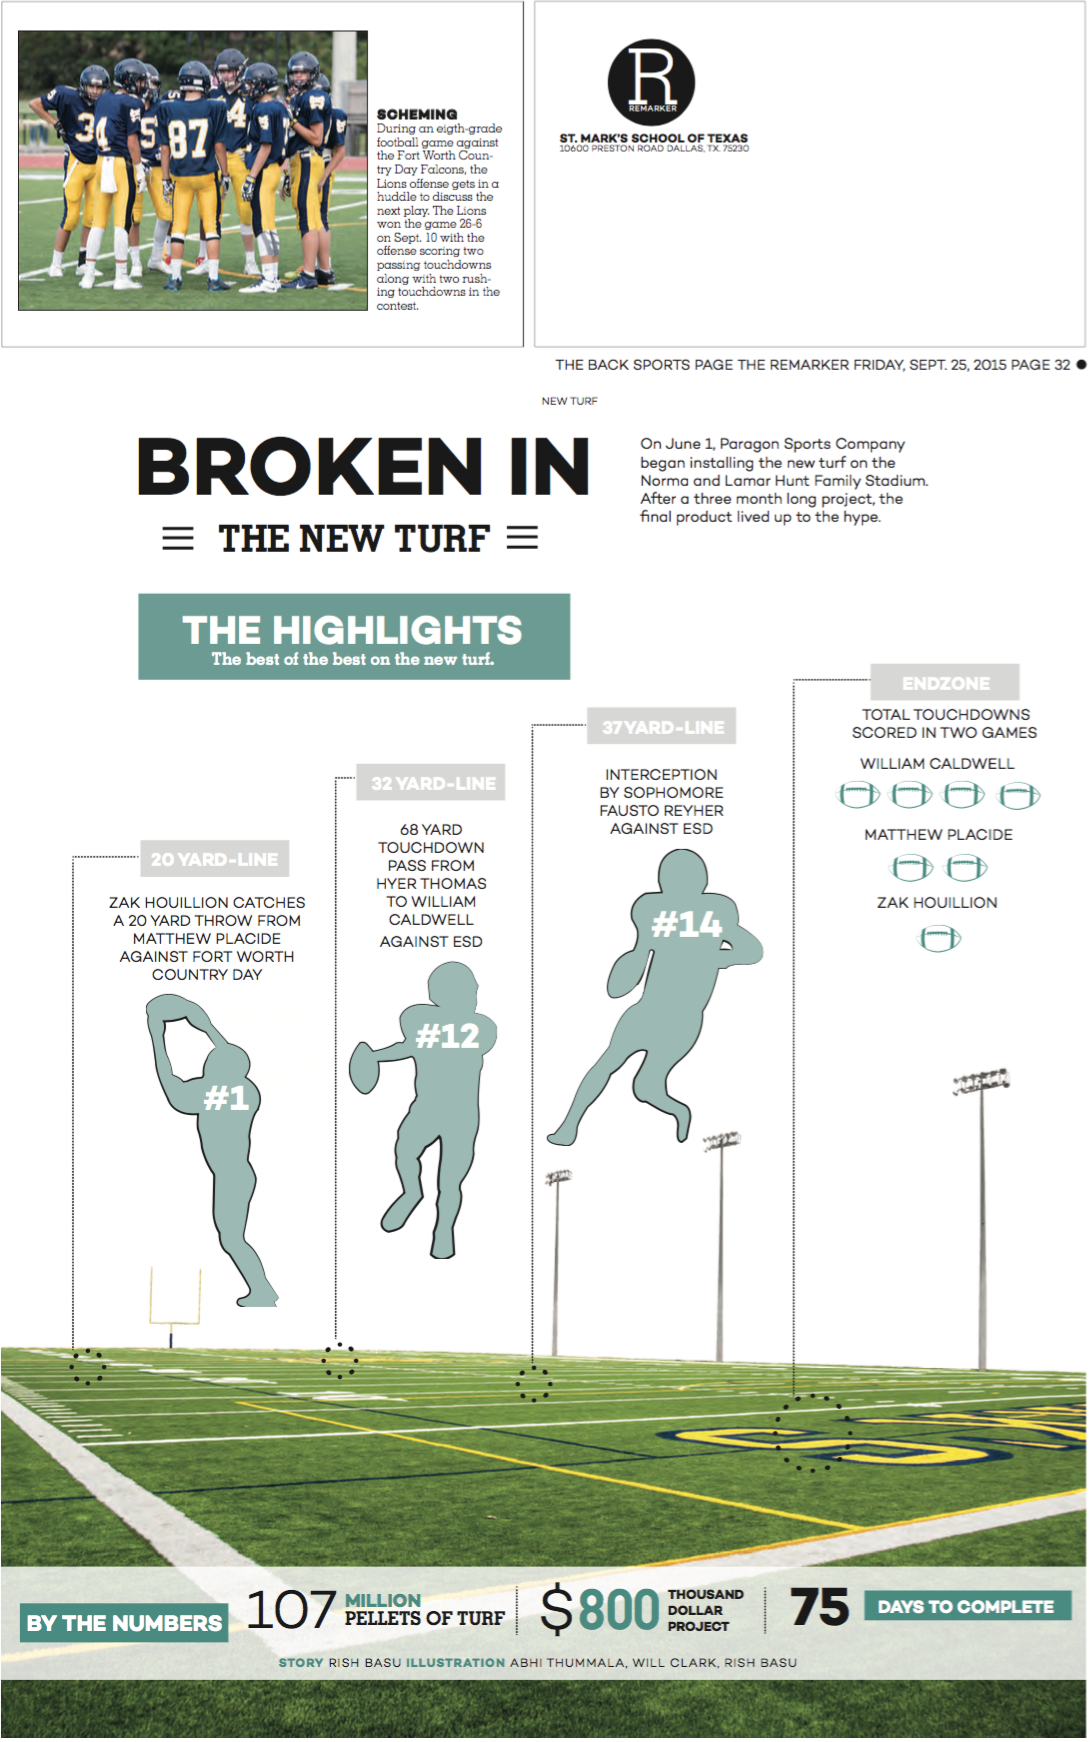 """When our school constructed a new turf field, I saw an opportunity for a backpage idea. After the first two football games, I compiled all the big plays and used a cutout of the field to convey how the new turf was """"broken in."""" I also decided to include an infographic on the production of the new turf near the bottom of the page."""